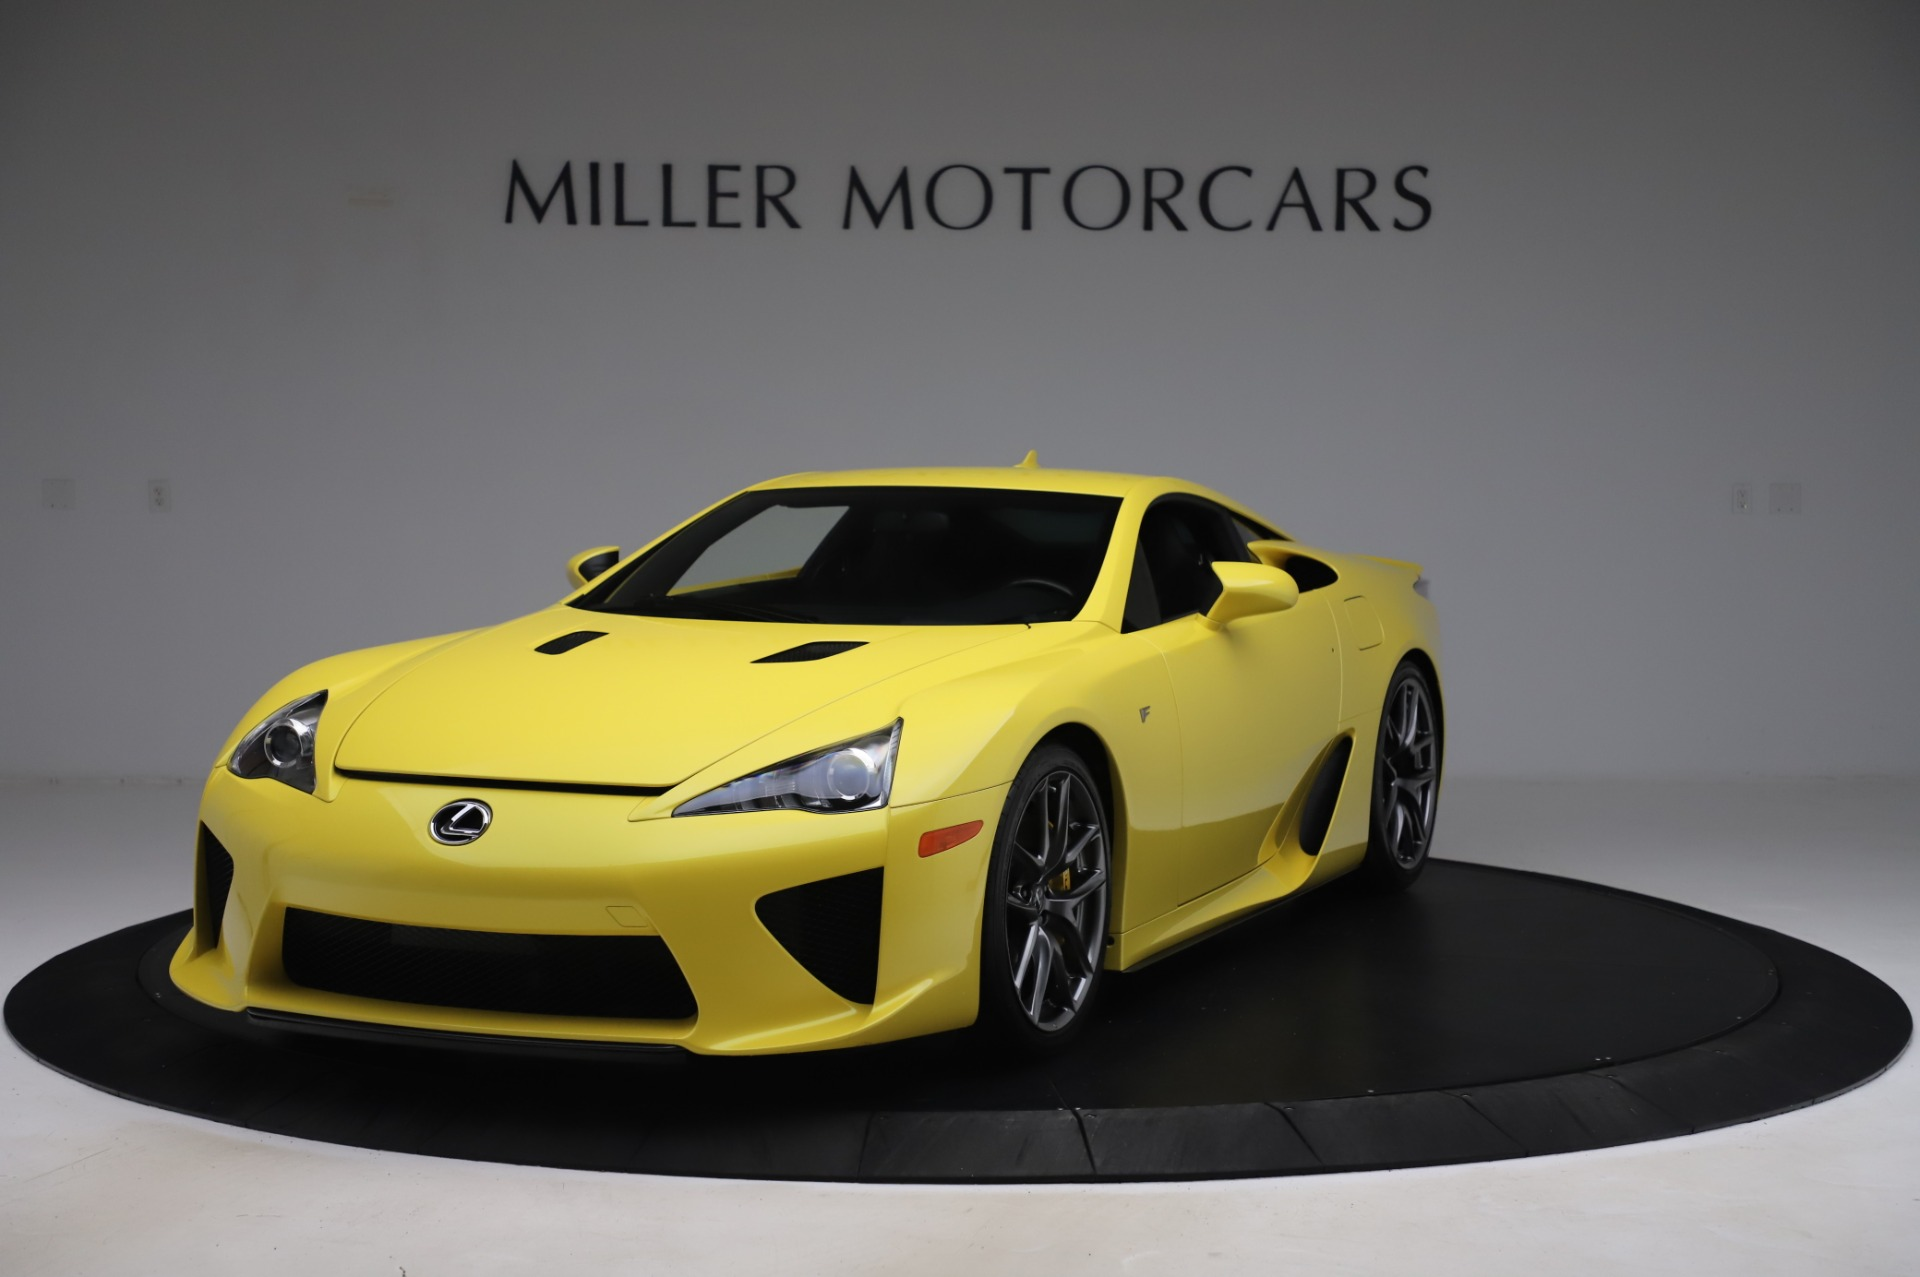 Used 2012 Lexus LFA for sale $509,900 at Pagani of Greenwich in Greenwich CT 06830 1